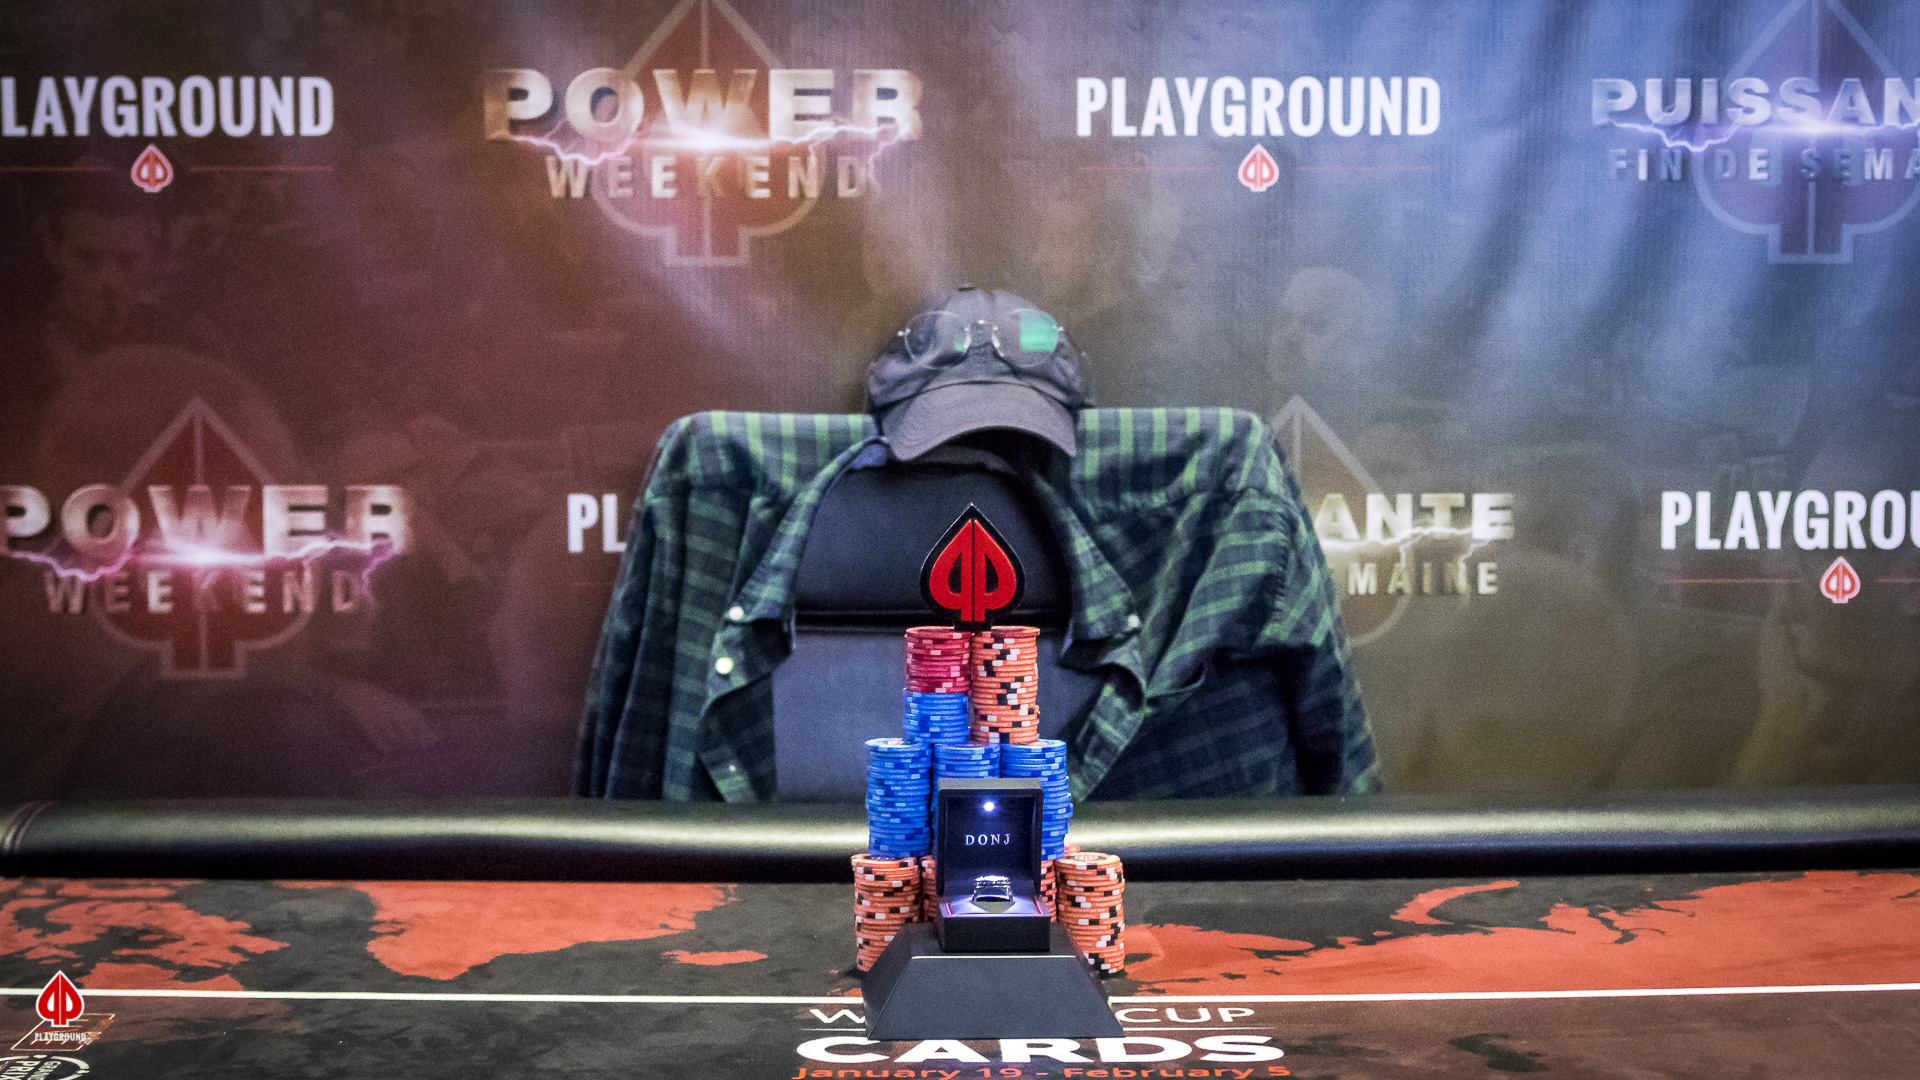 Playground Power Weekend 2020 winner